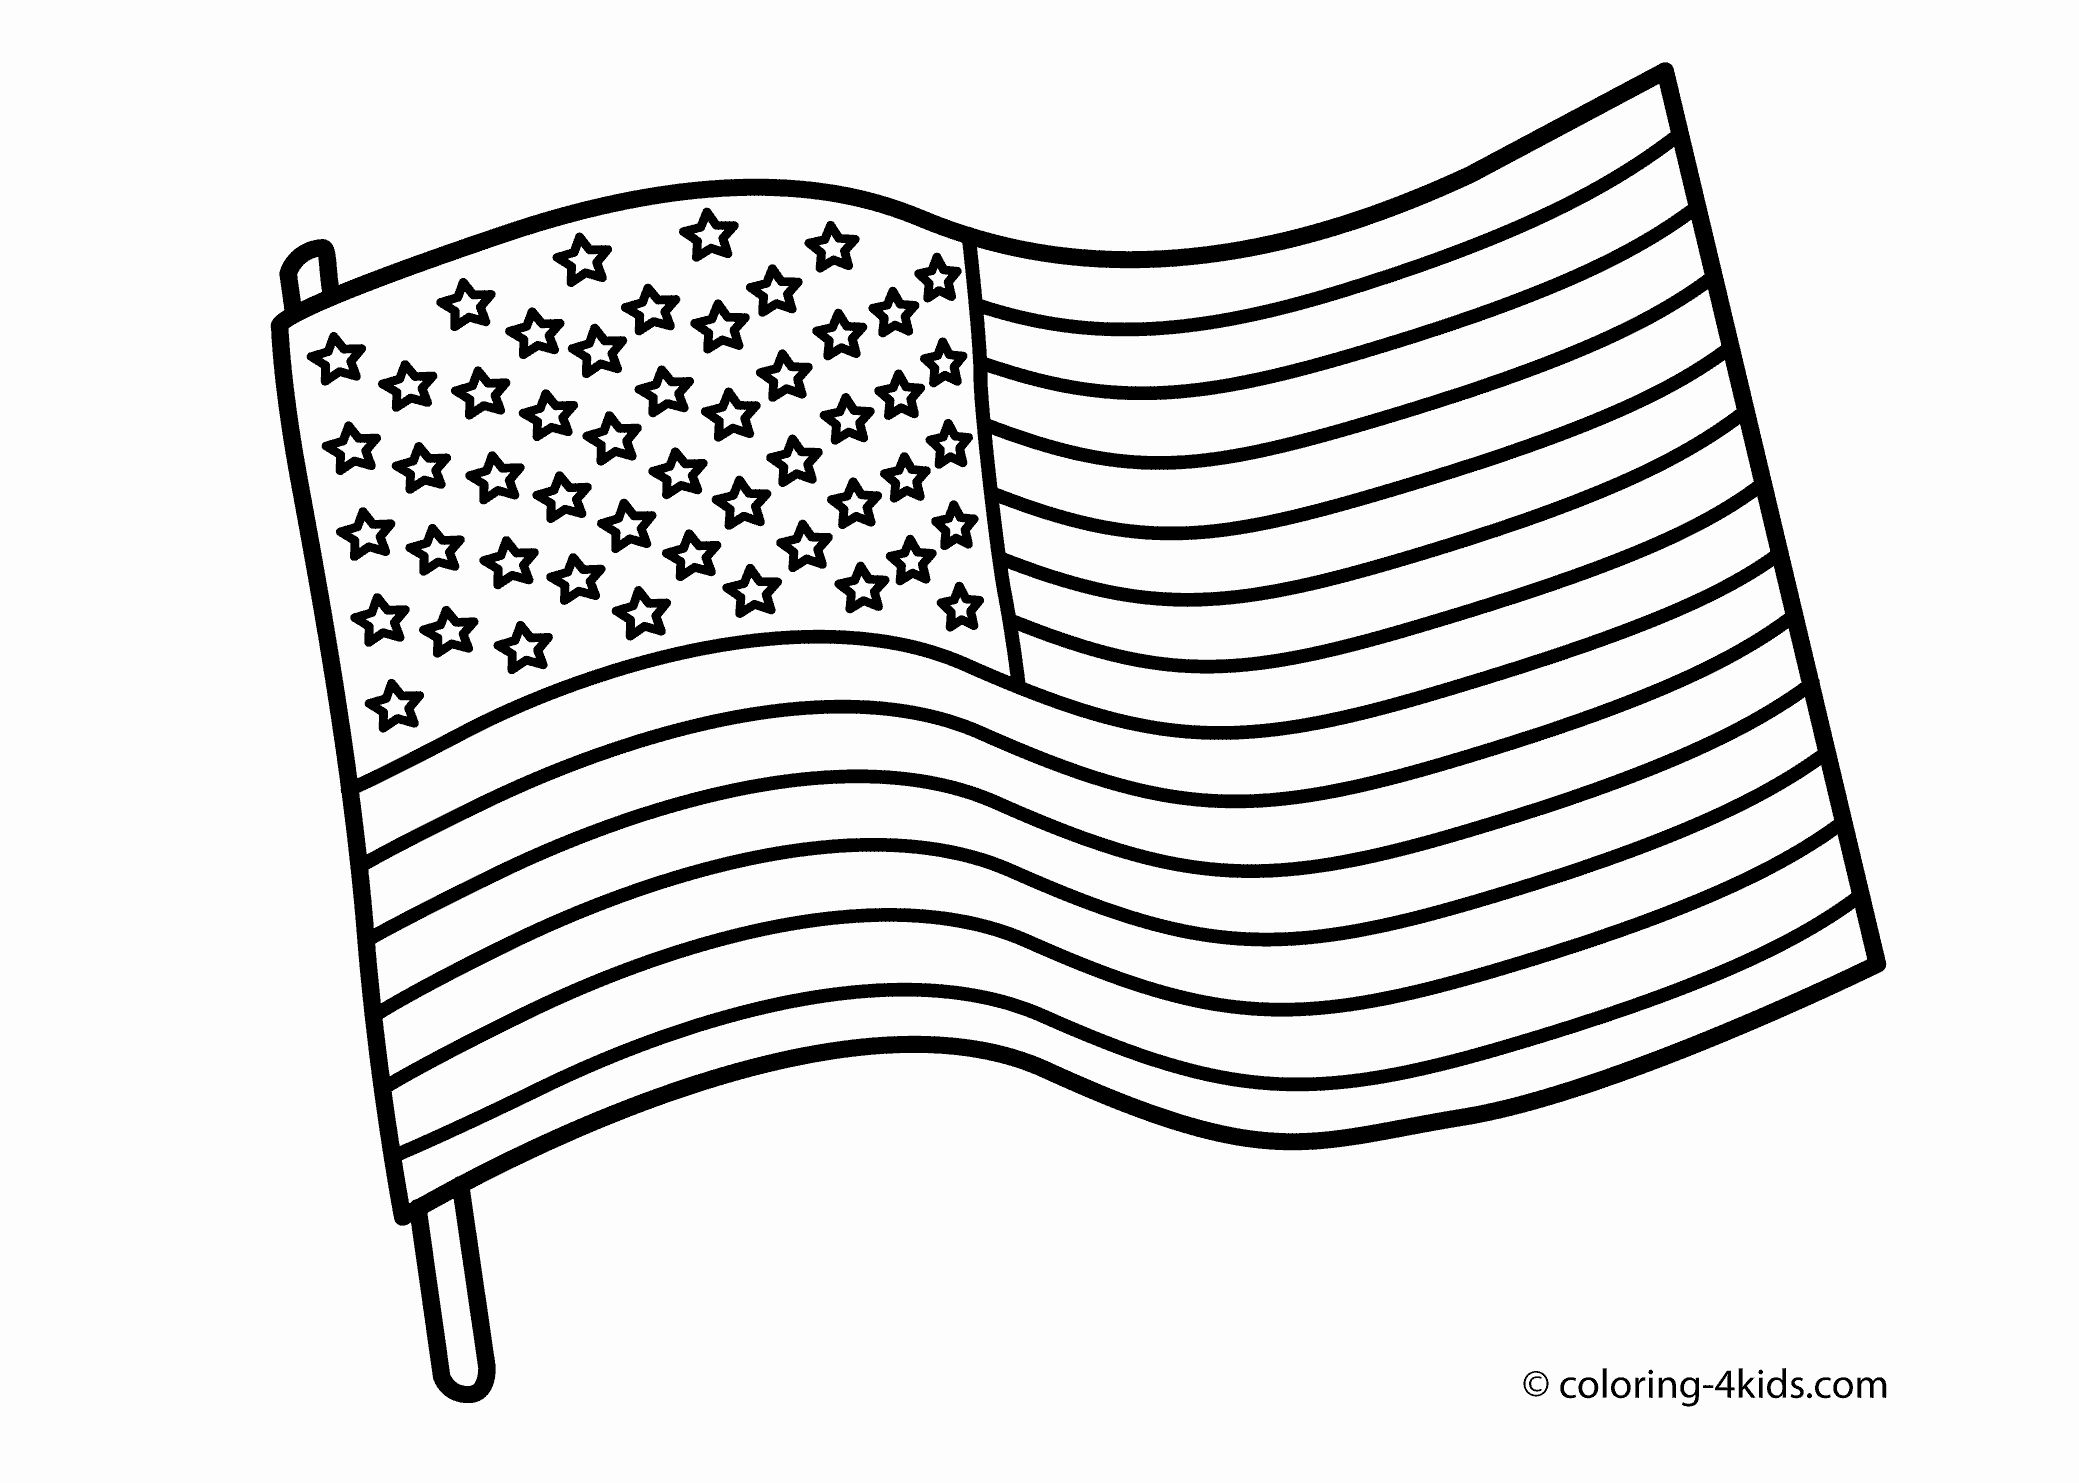 13 Star Flag Coloring Page Awesome Black And White